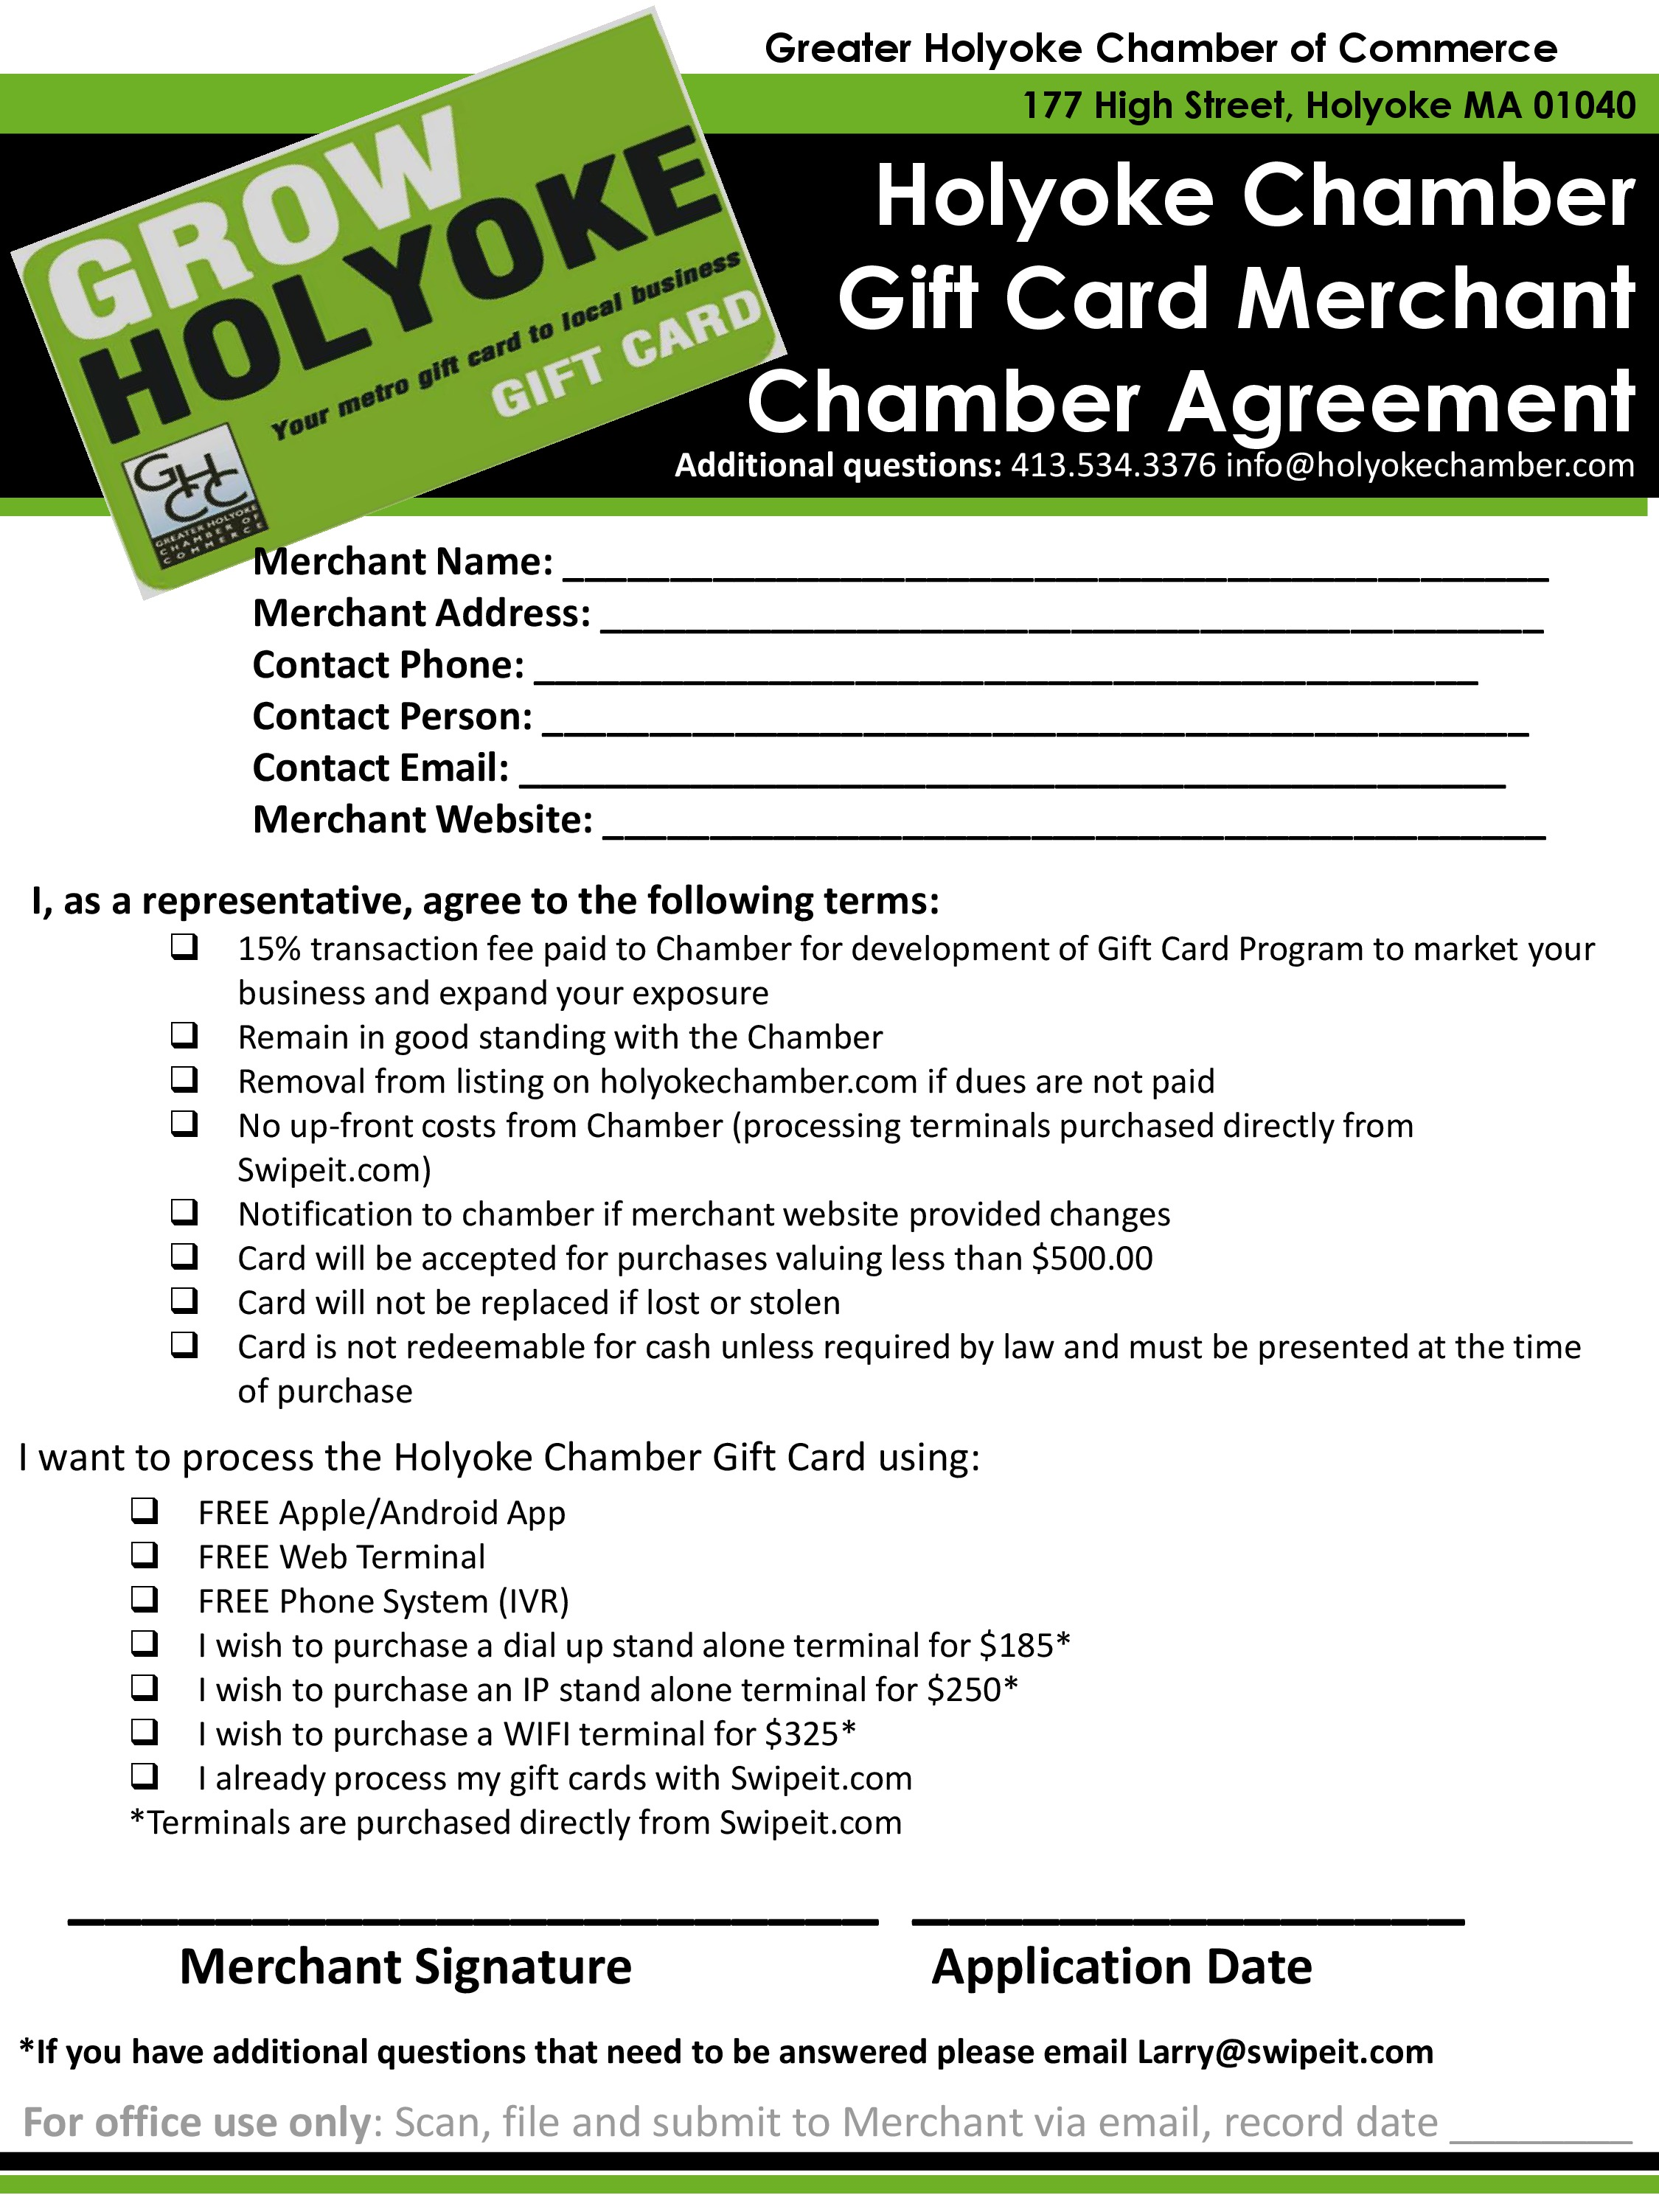 Become A Merchant Greater Holyoke Chamber Of Commerce Ma